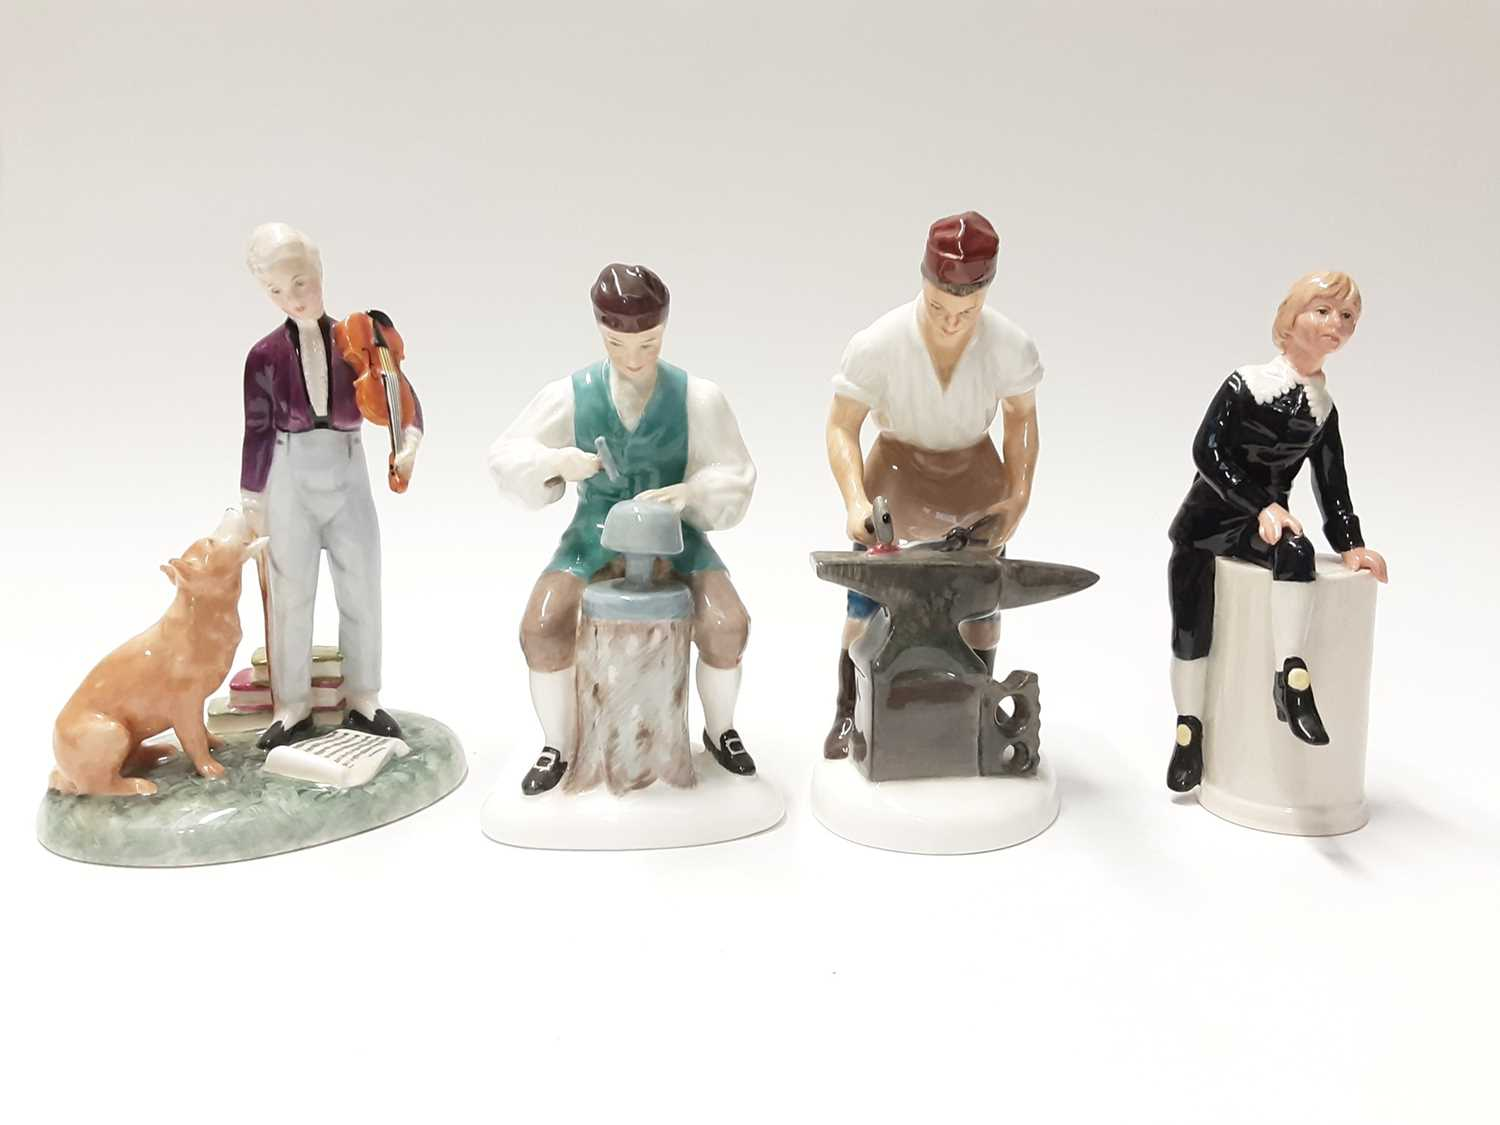 Lot 76 - Four Royal Doulton figures - The Young Master HN2872, The Silversmith of Williamsburg, HN2208, Little Lord Fauntleroy HN2972 and The Blacksmith of Williamsburg HN2240